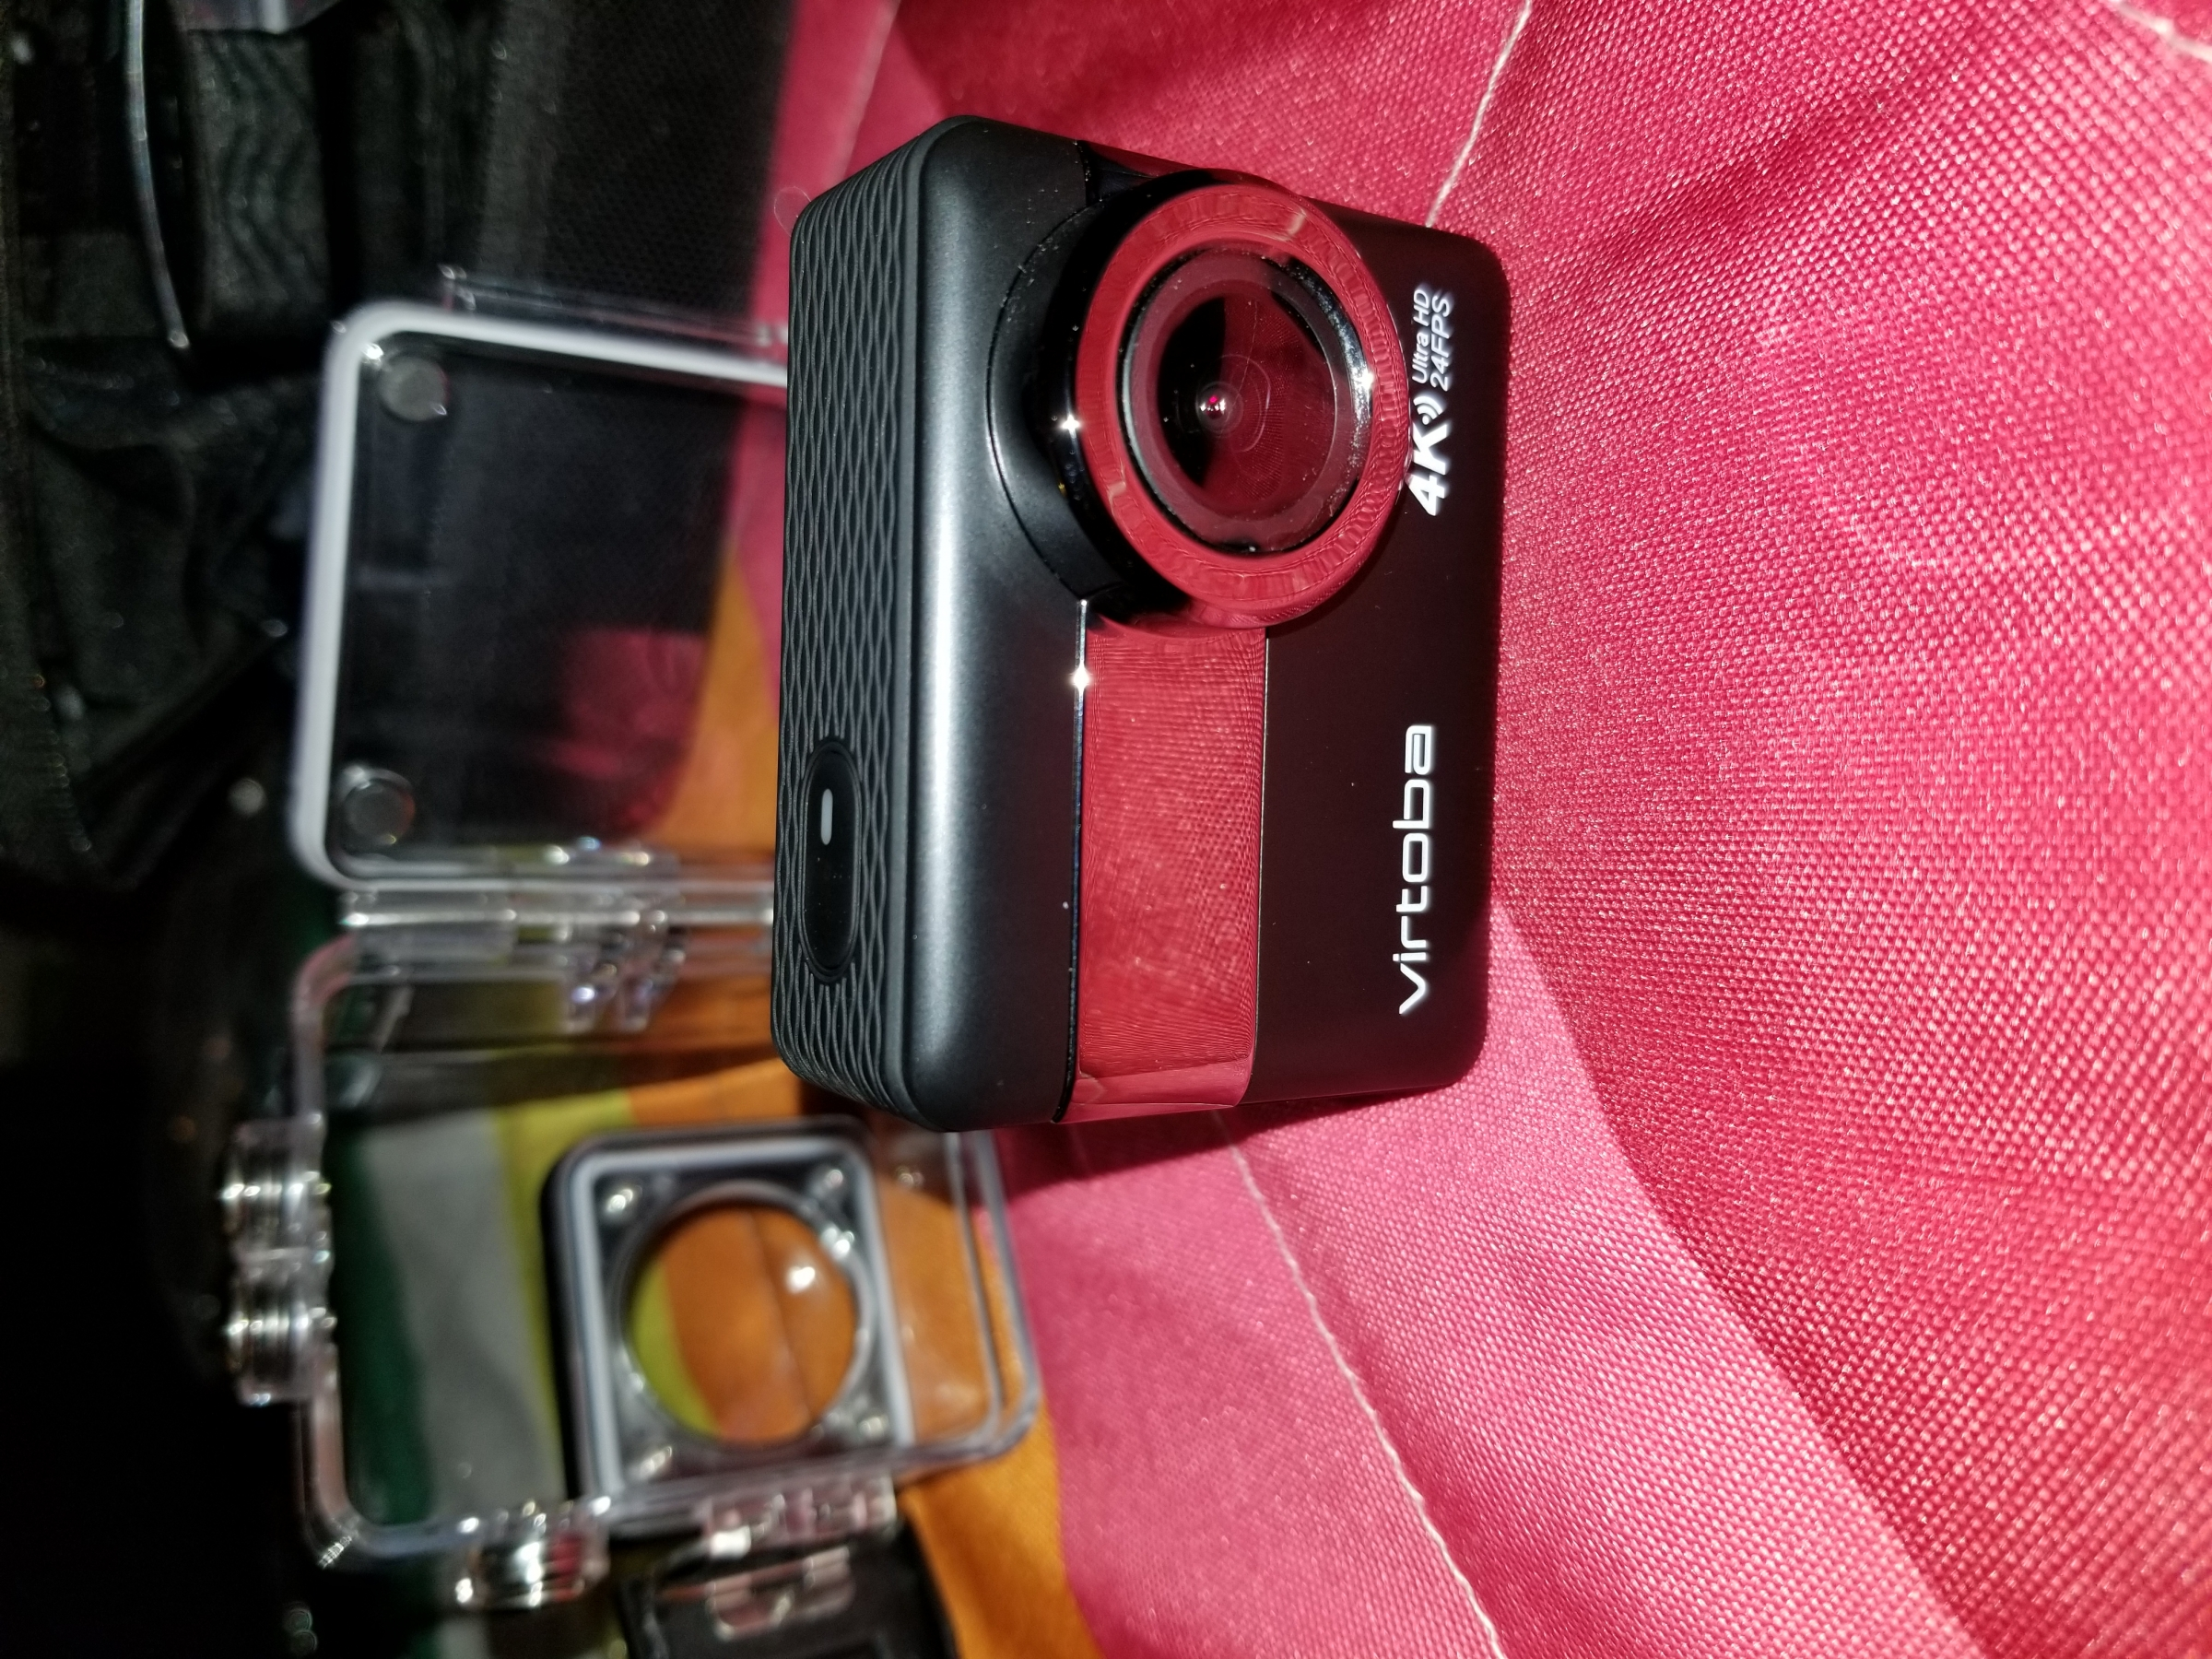 High Quality Action Camera at an Affordable Price!